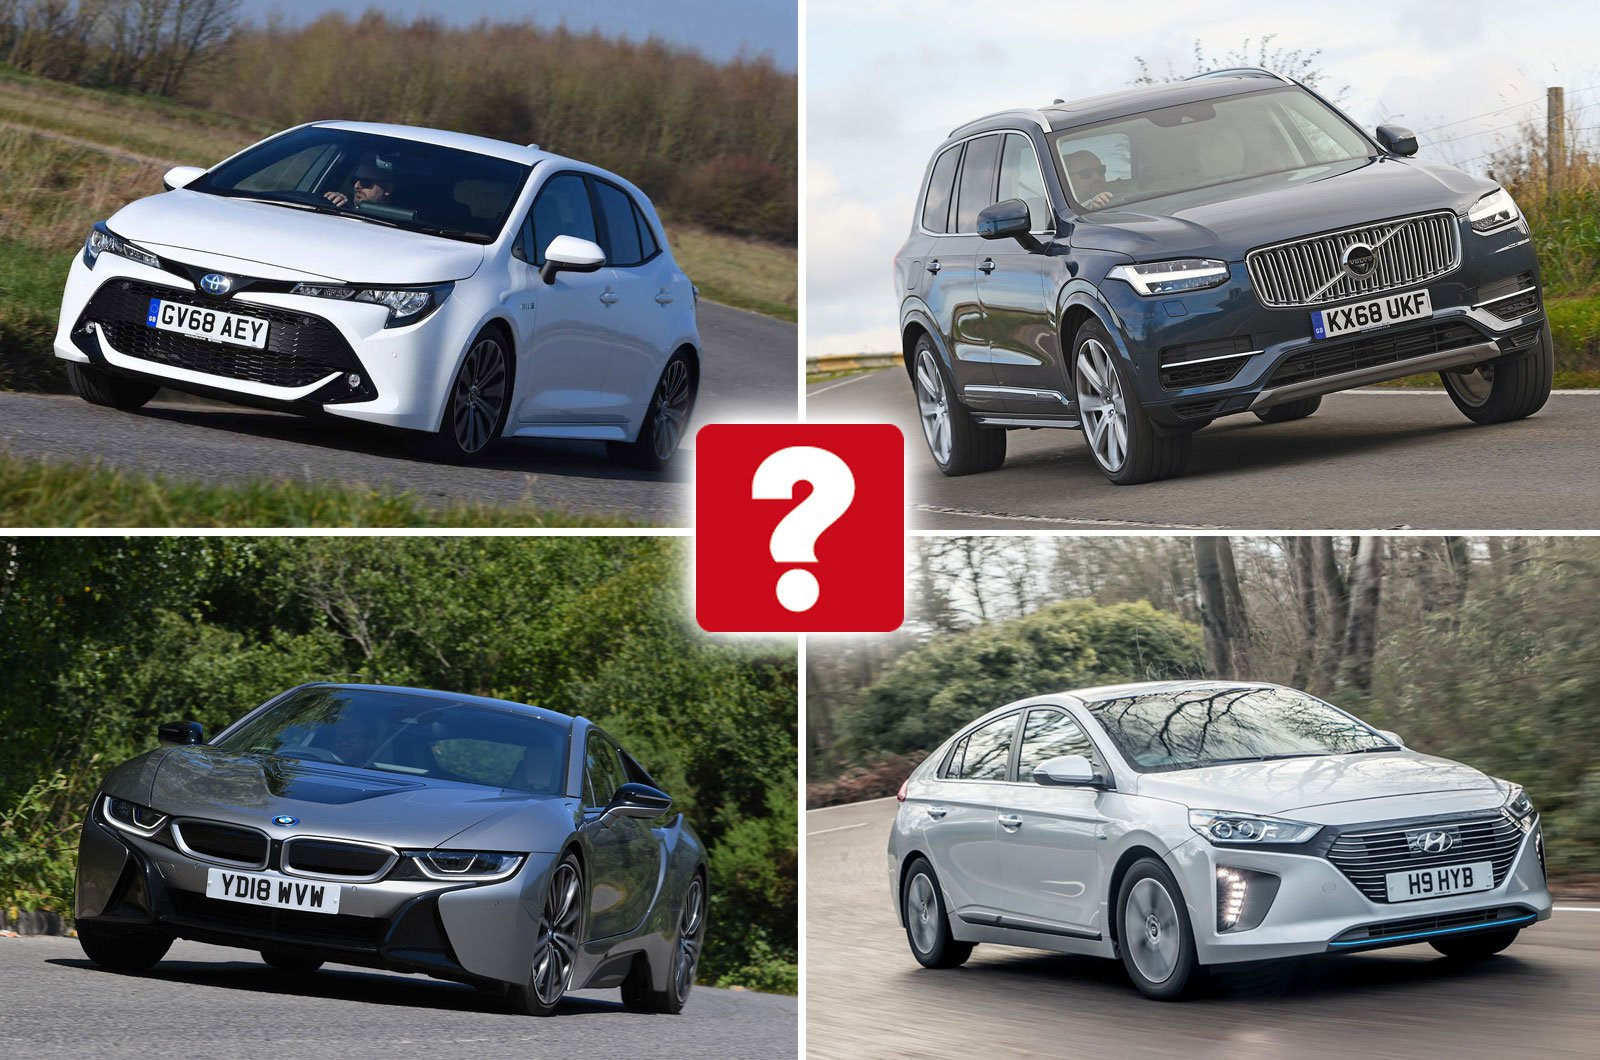 Everyone From Toyota To Porsche S Hybrid Cars These Days But Which Models Should You Consider And Avoid